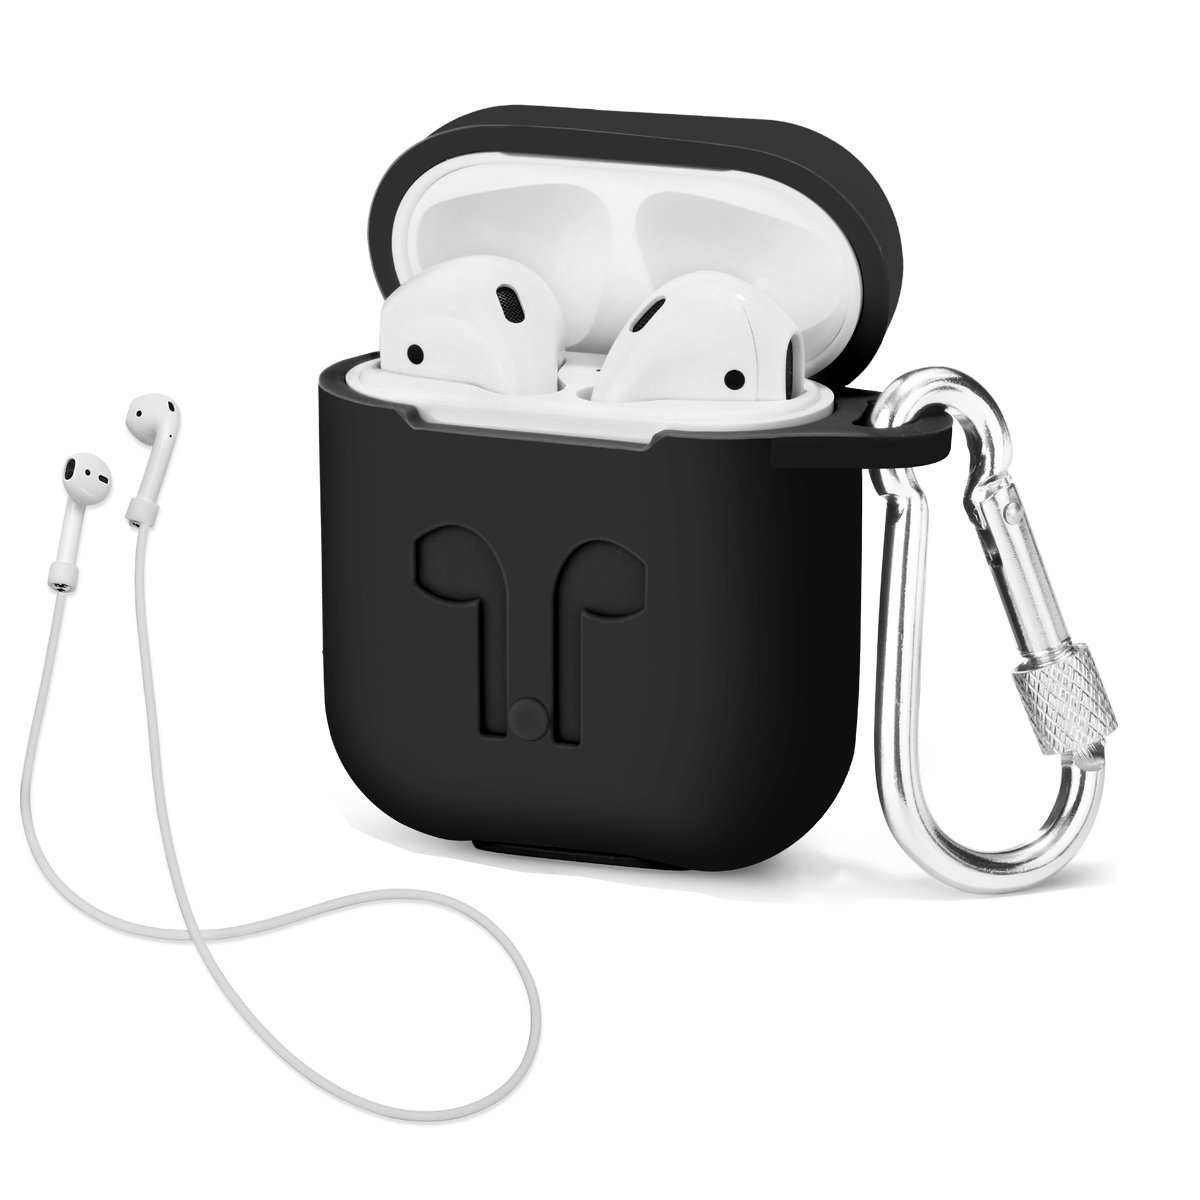 Airpods With Strap Protective Silicone Soft Cover For Apple Iphone 7 8 X Plus Wireless Earphone Accessorie